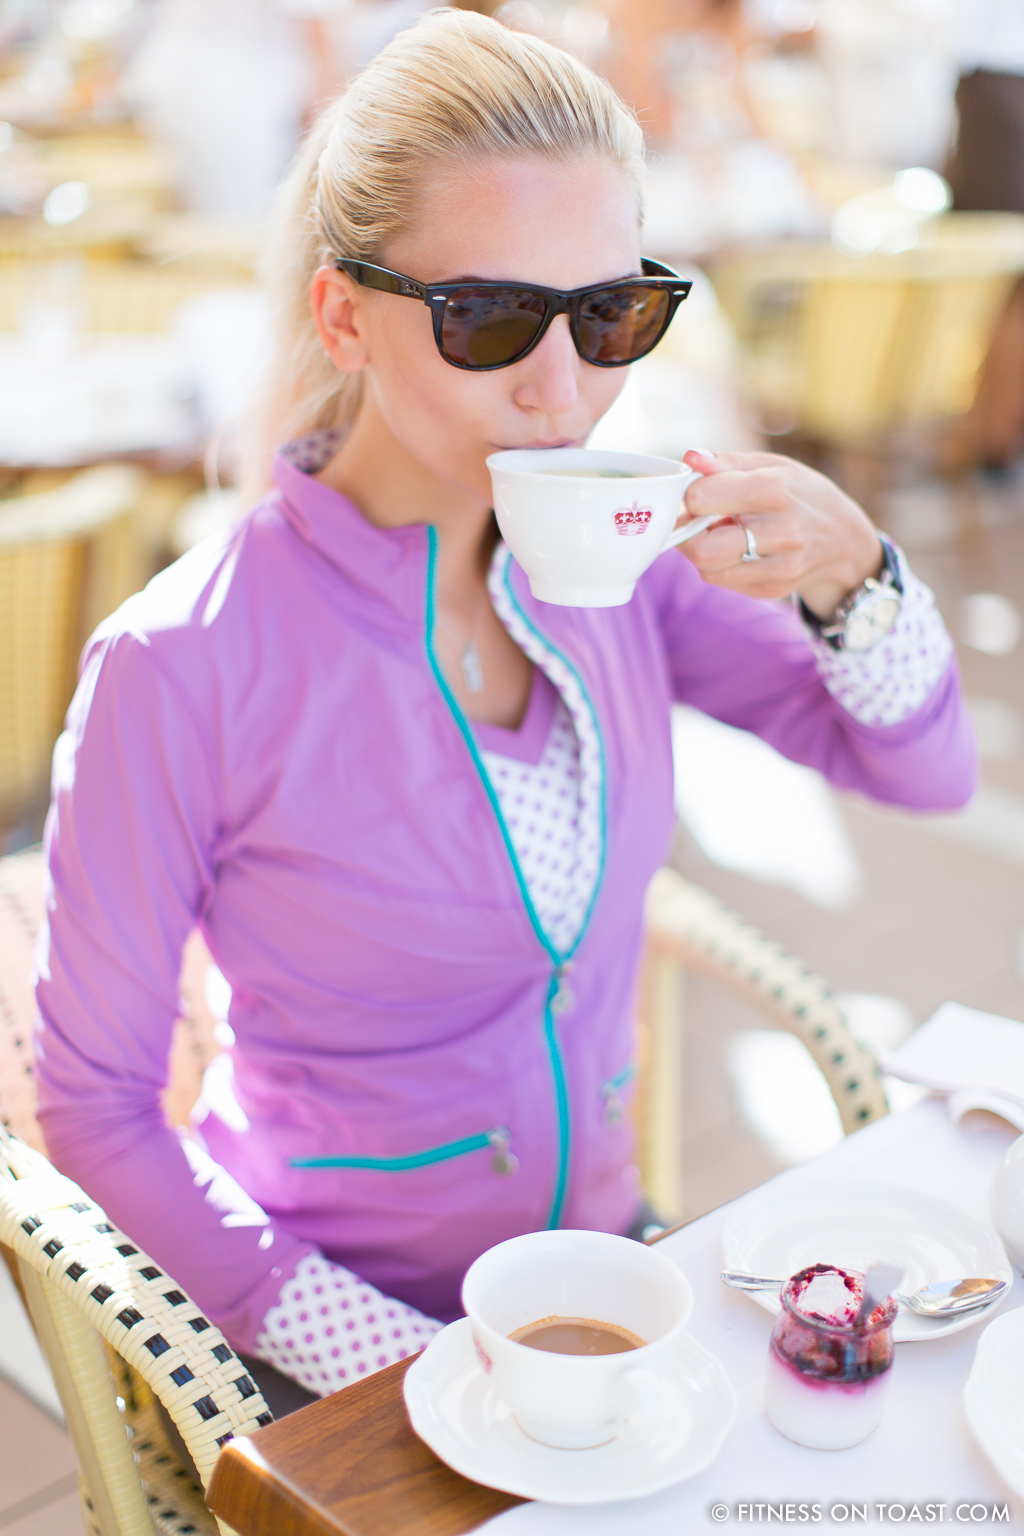 Vevie Hertford Cannes La Croisette Run Fitness On Toast Health Fashion Running Blog Faya -3